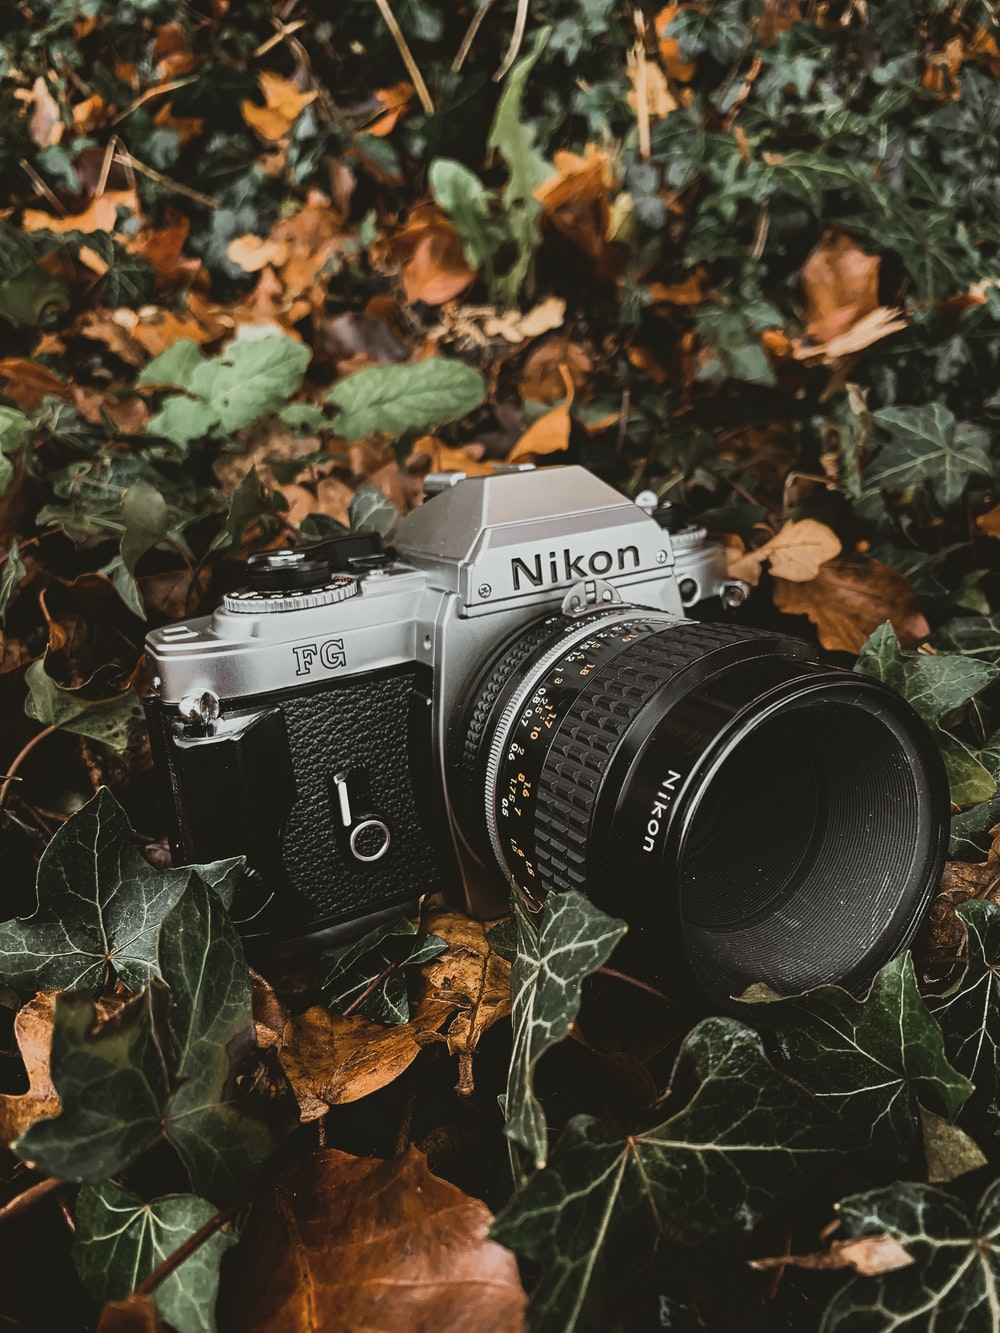 grey and black Nikon SLR camera